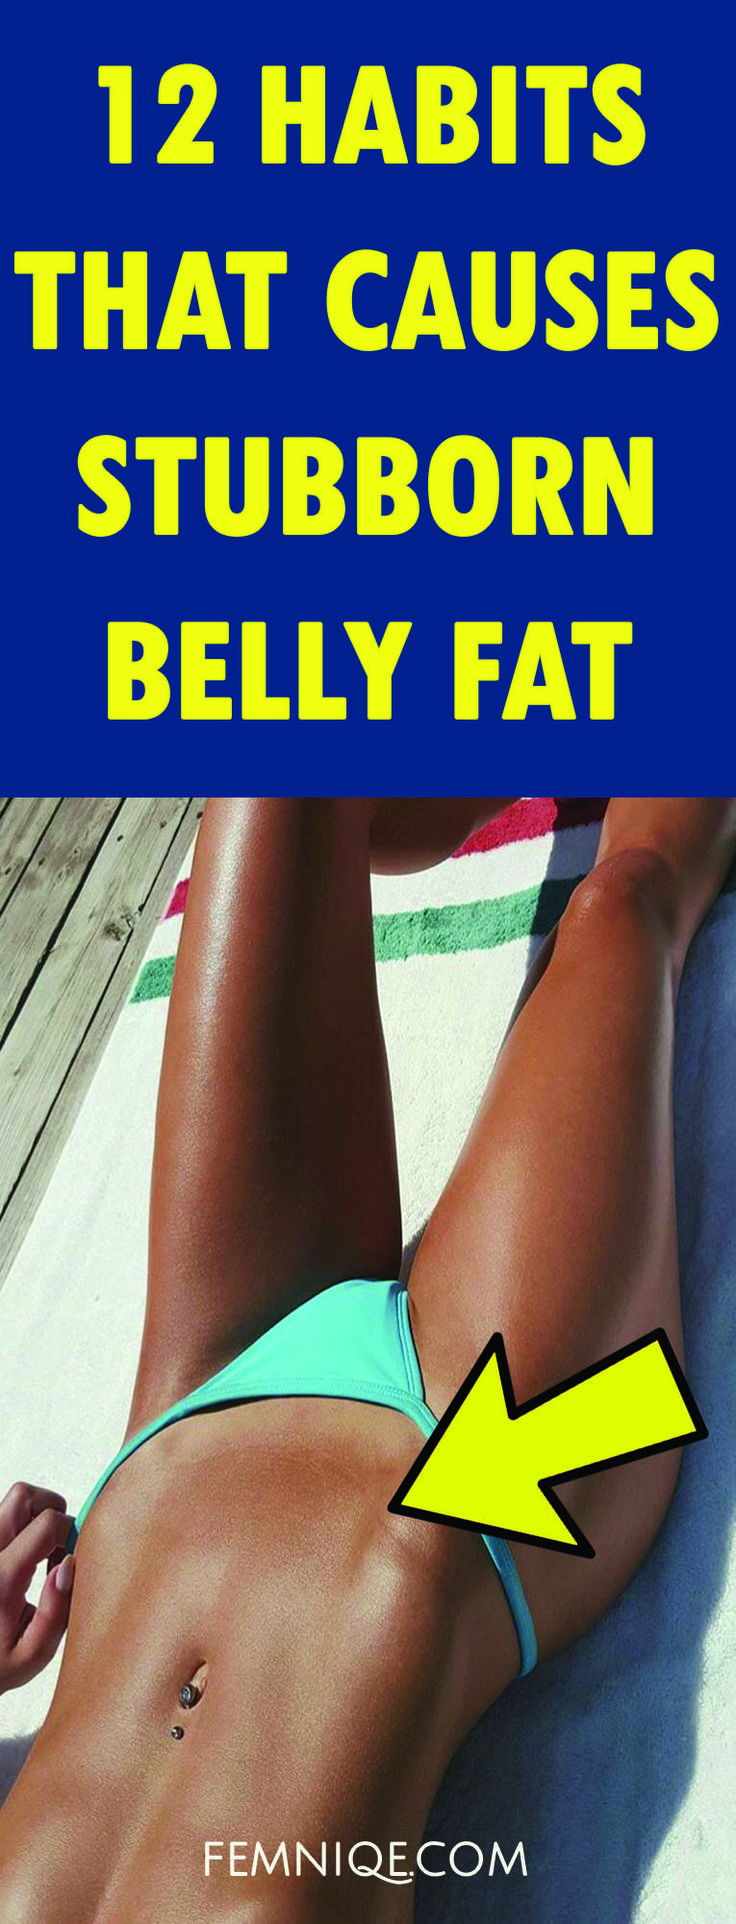 How To Lose Belly Fat | What causes belly fat | How to lose belly fat in a week | How to lose belly fat for teens | How to lose belly fat for women | How to lose belly fat fast